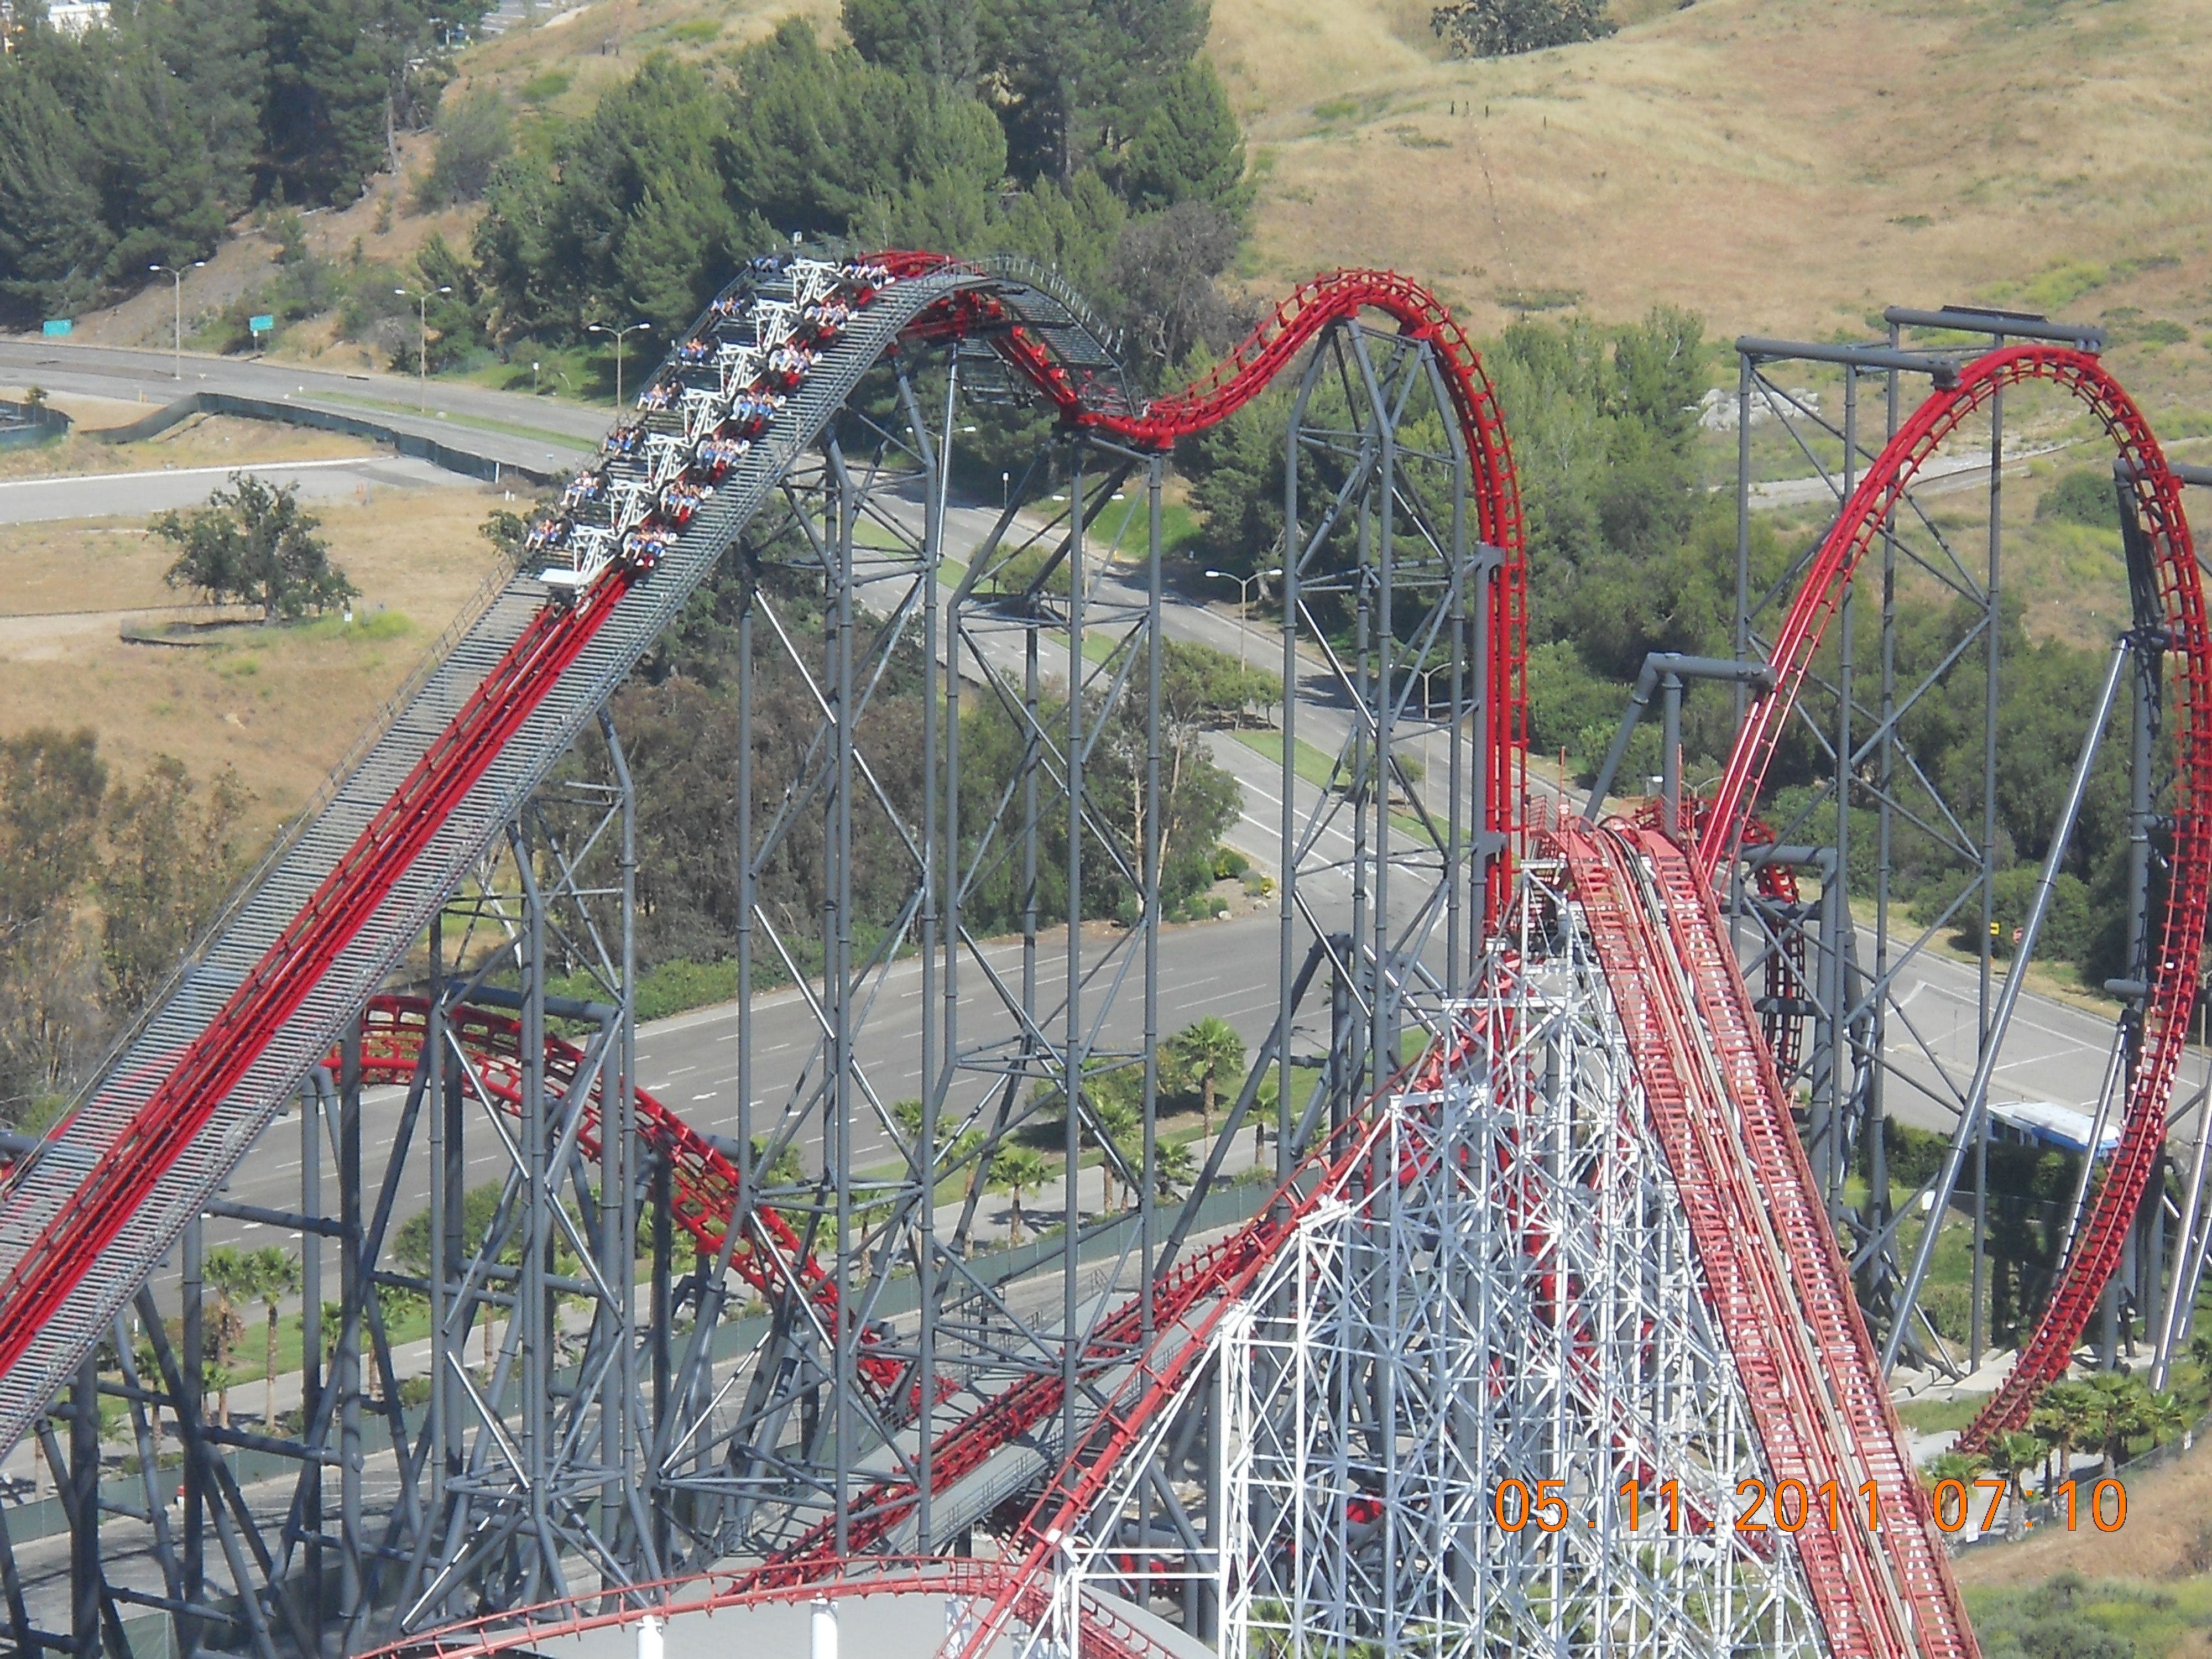 X2 Six Flags Magic Mountain Valencia Ca Multi Looping Winged Coaster With Freely Rotating Seats Amusement Park Rides Roller Coaster Thrill Ride